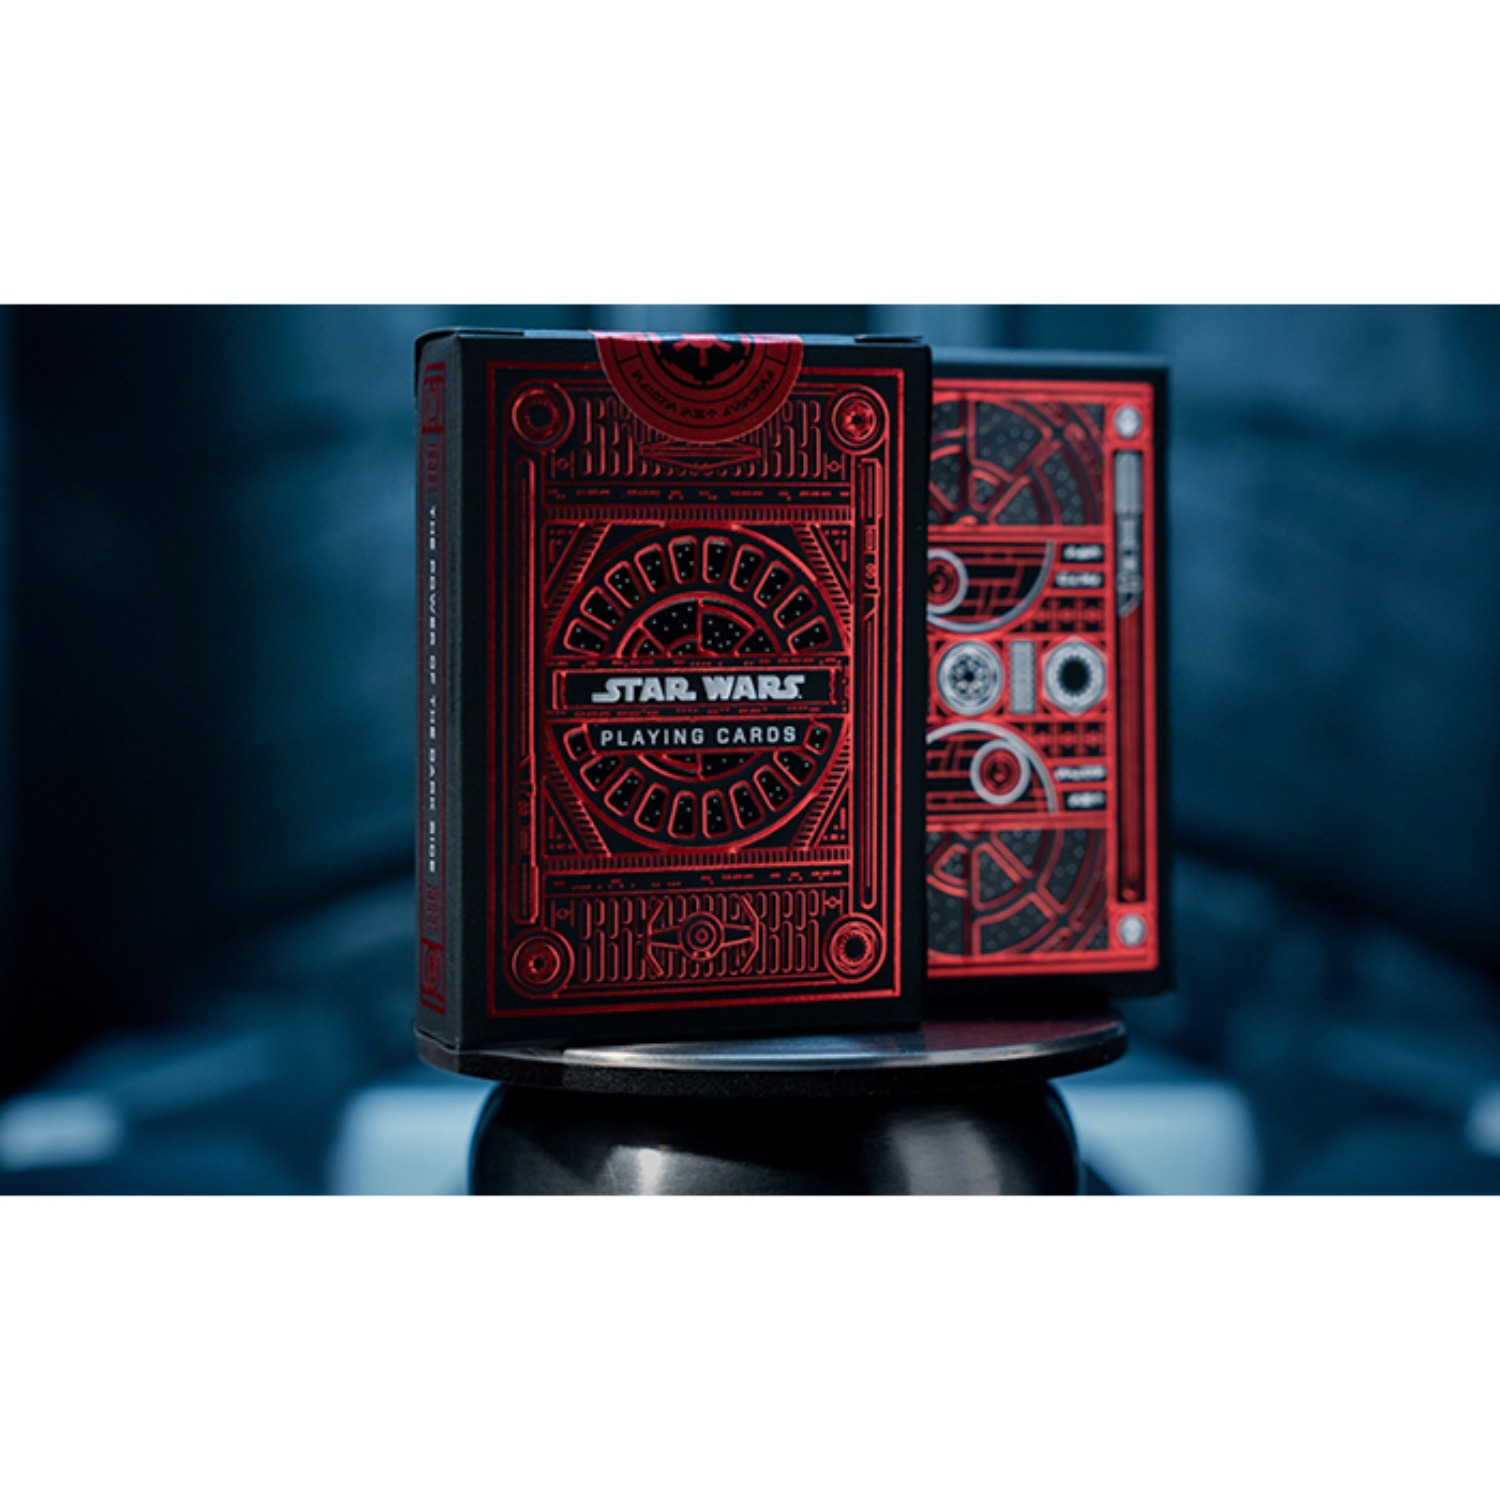 [스타워즈/레드]Star Wars Dark Side (RED) Playing Cards by theory11